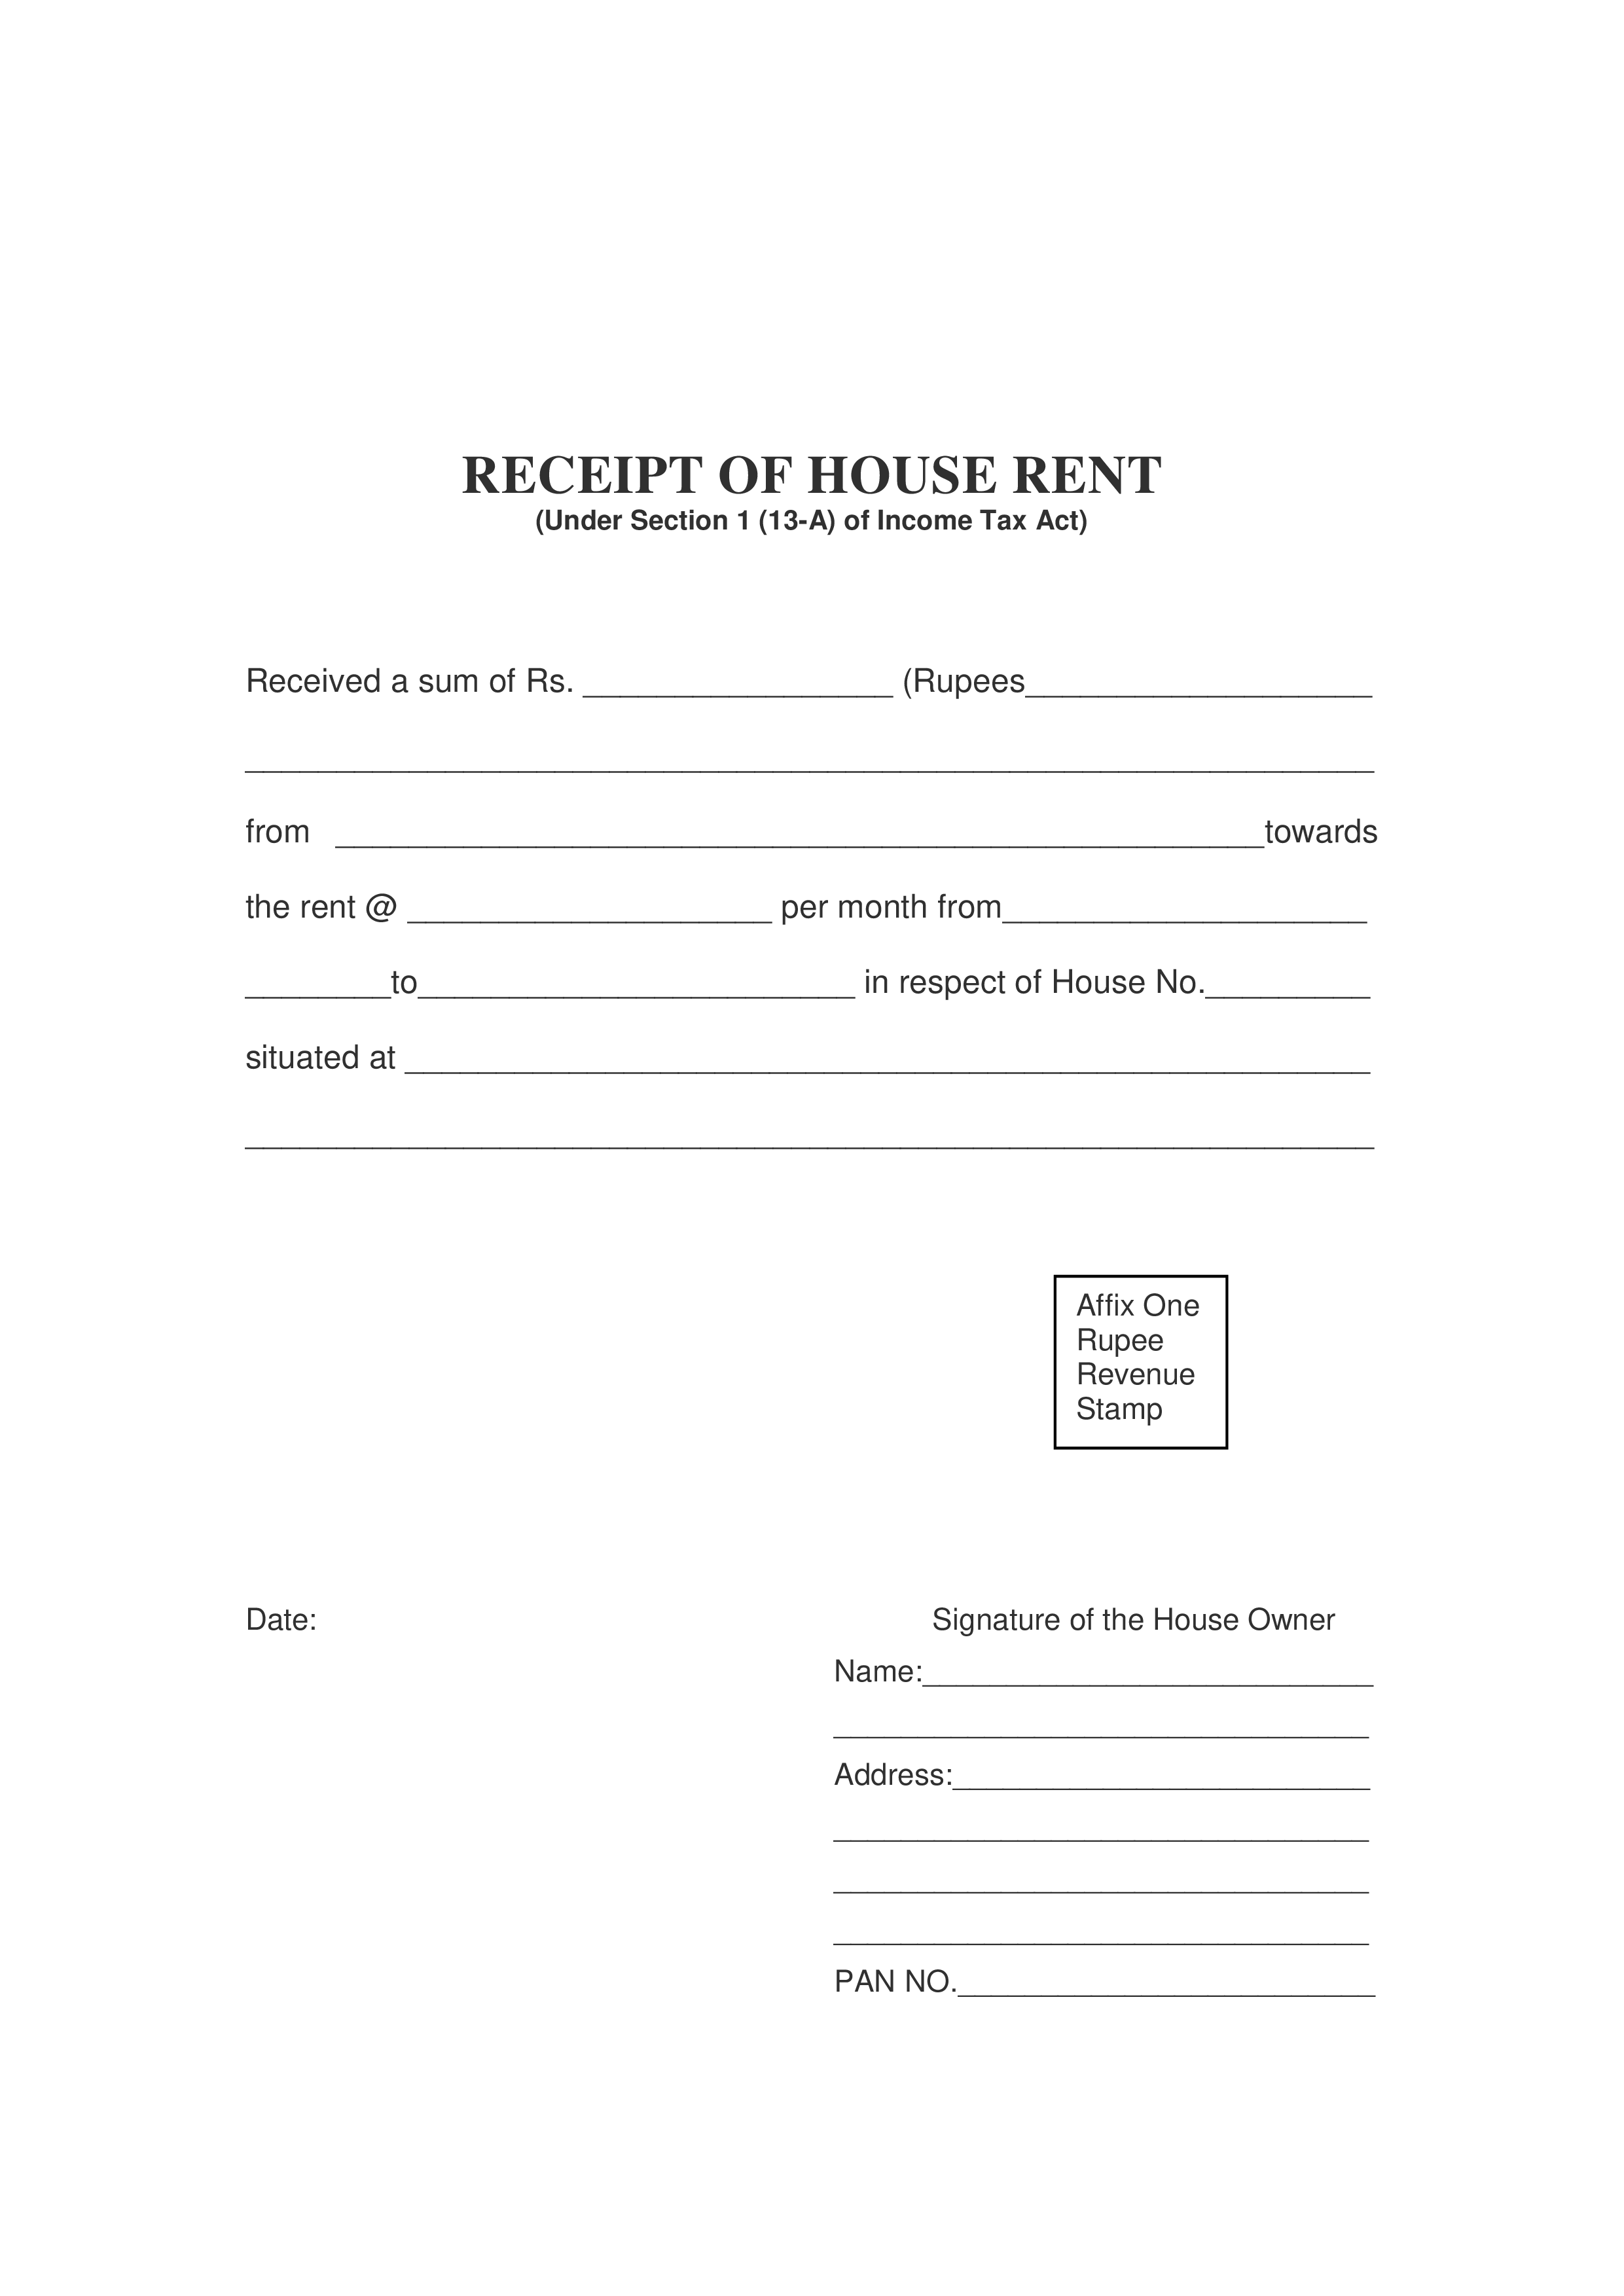 Printable House Rent Receipt How To Create A House Rent Receipt Download This Printable House Rent R Free Receipt Template Receipt Template Invoice Template